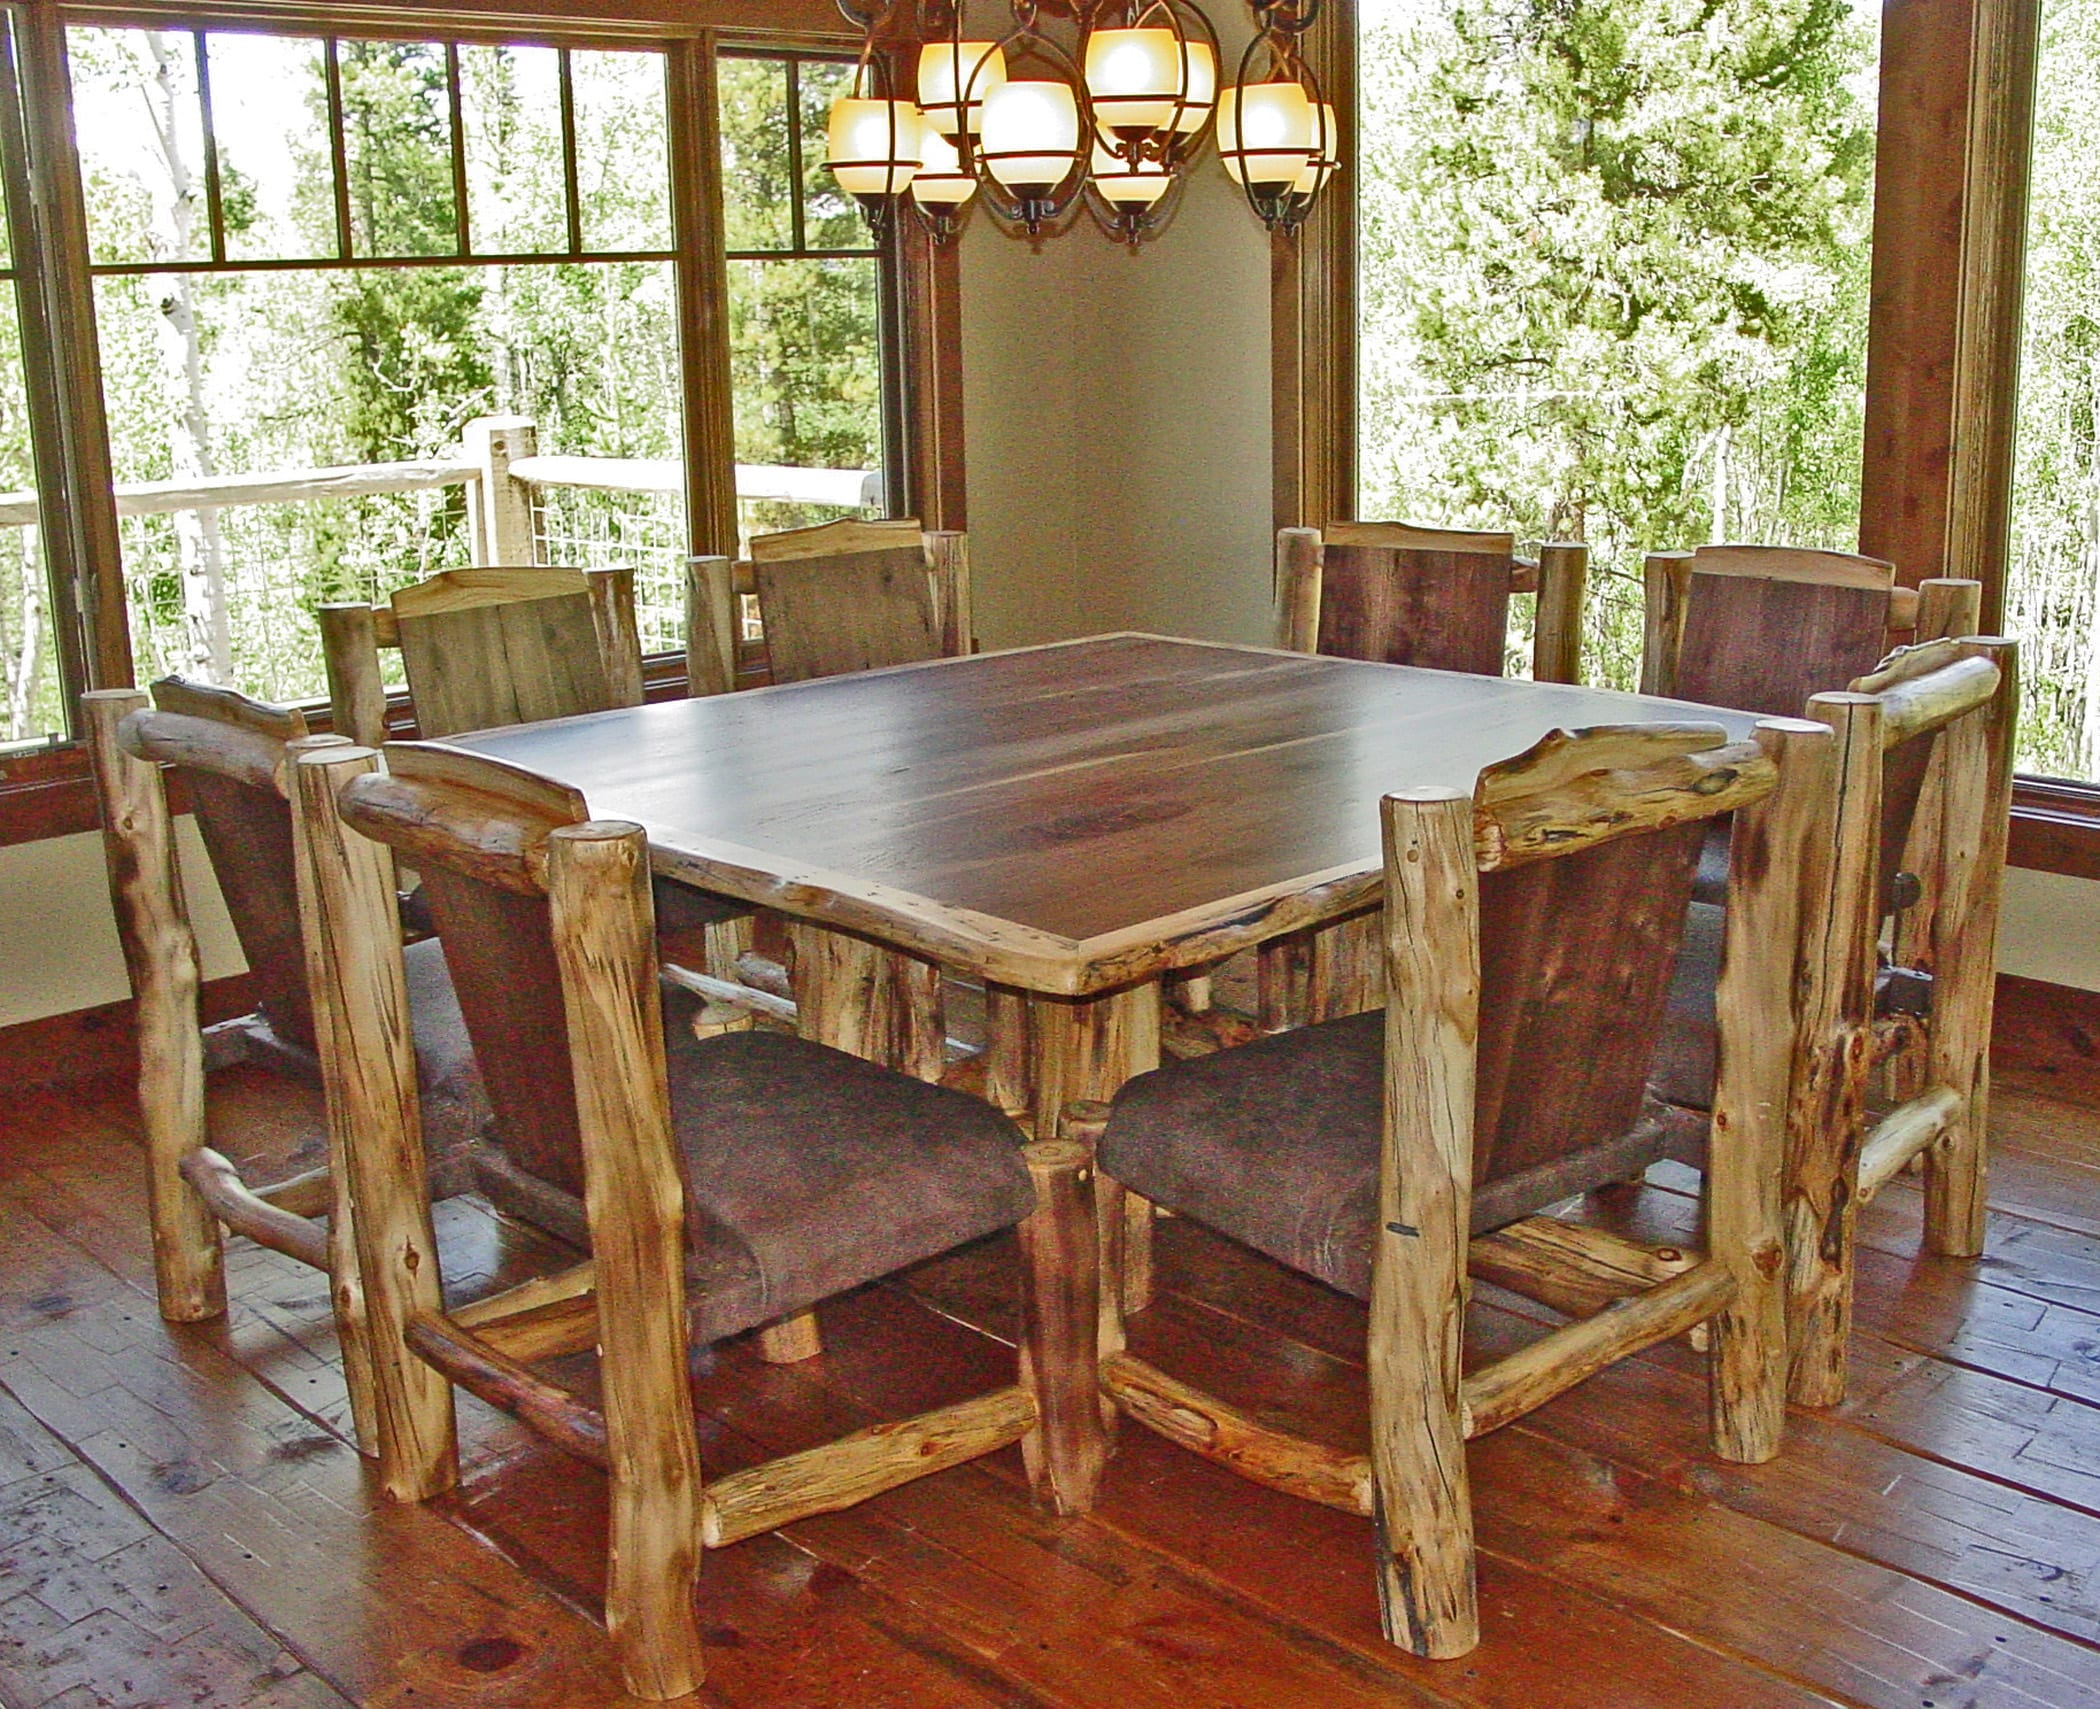 Log Table And Chairs 66 Walnut Dining Table W Log Edge 8 Chairs Downsized2 1